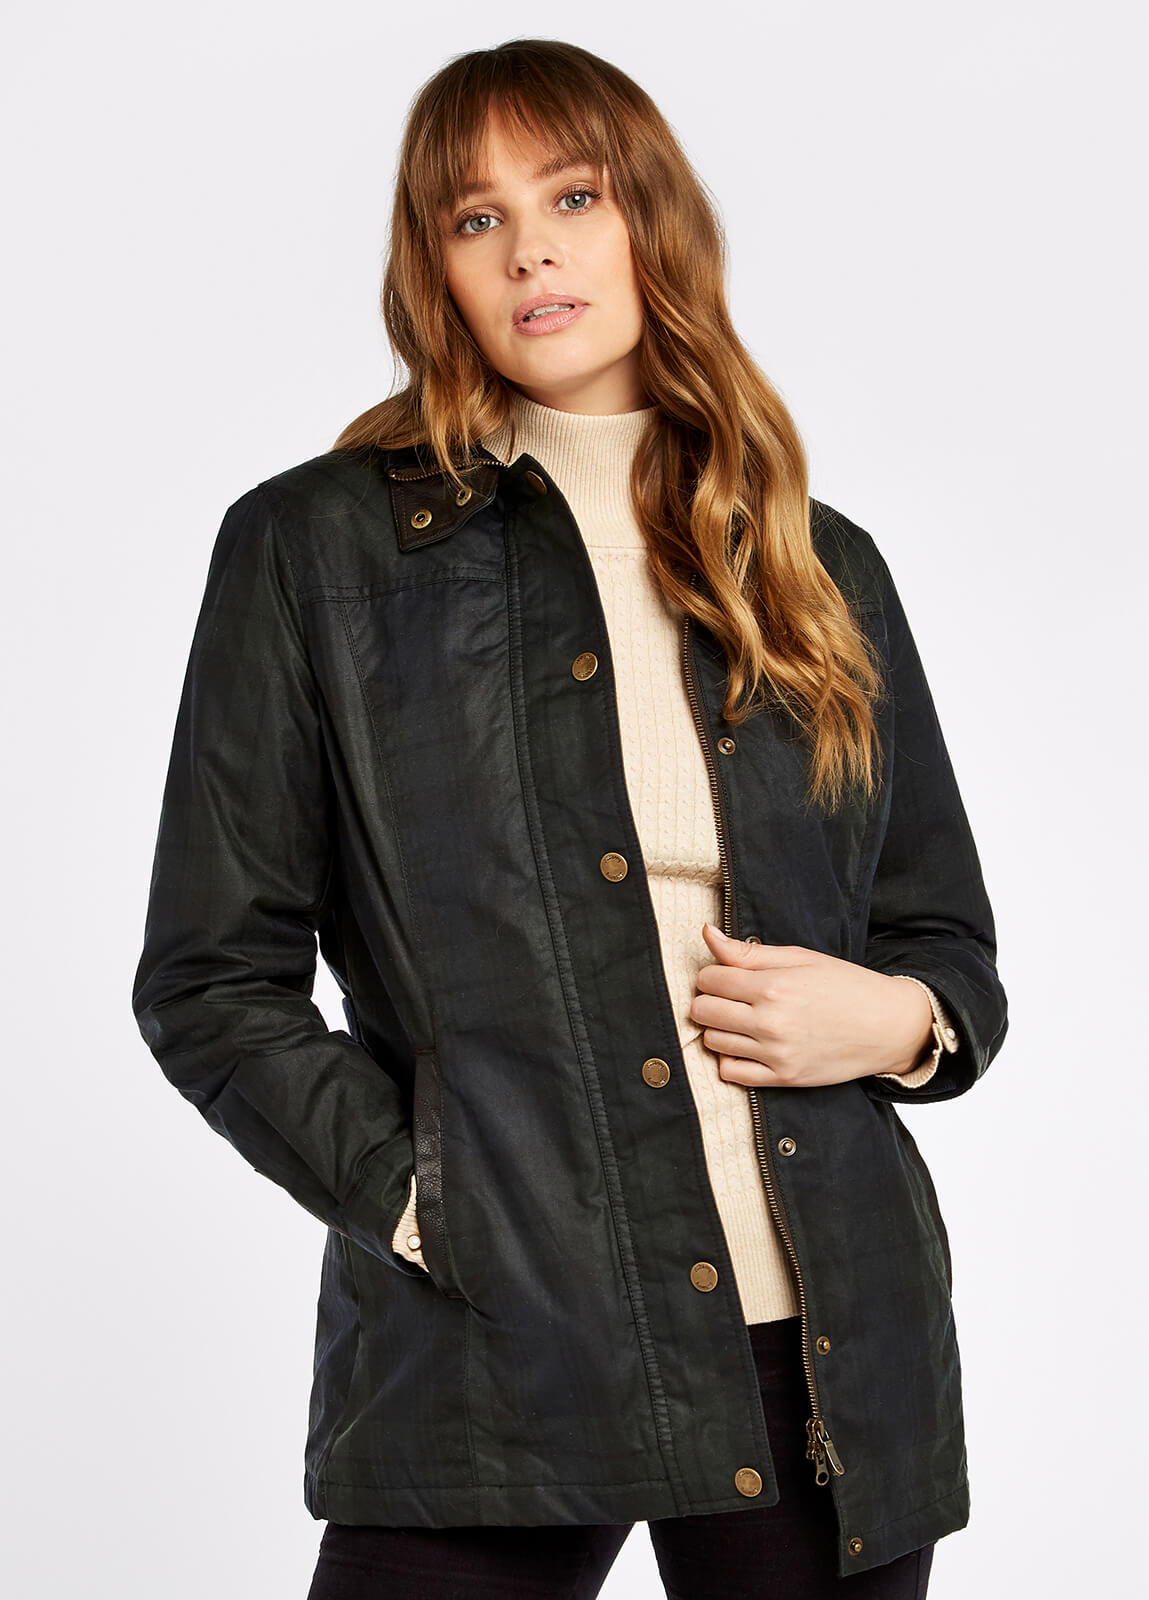 Annestown Wax Jacket - Black Watch